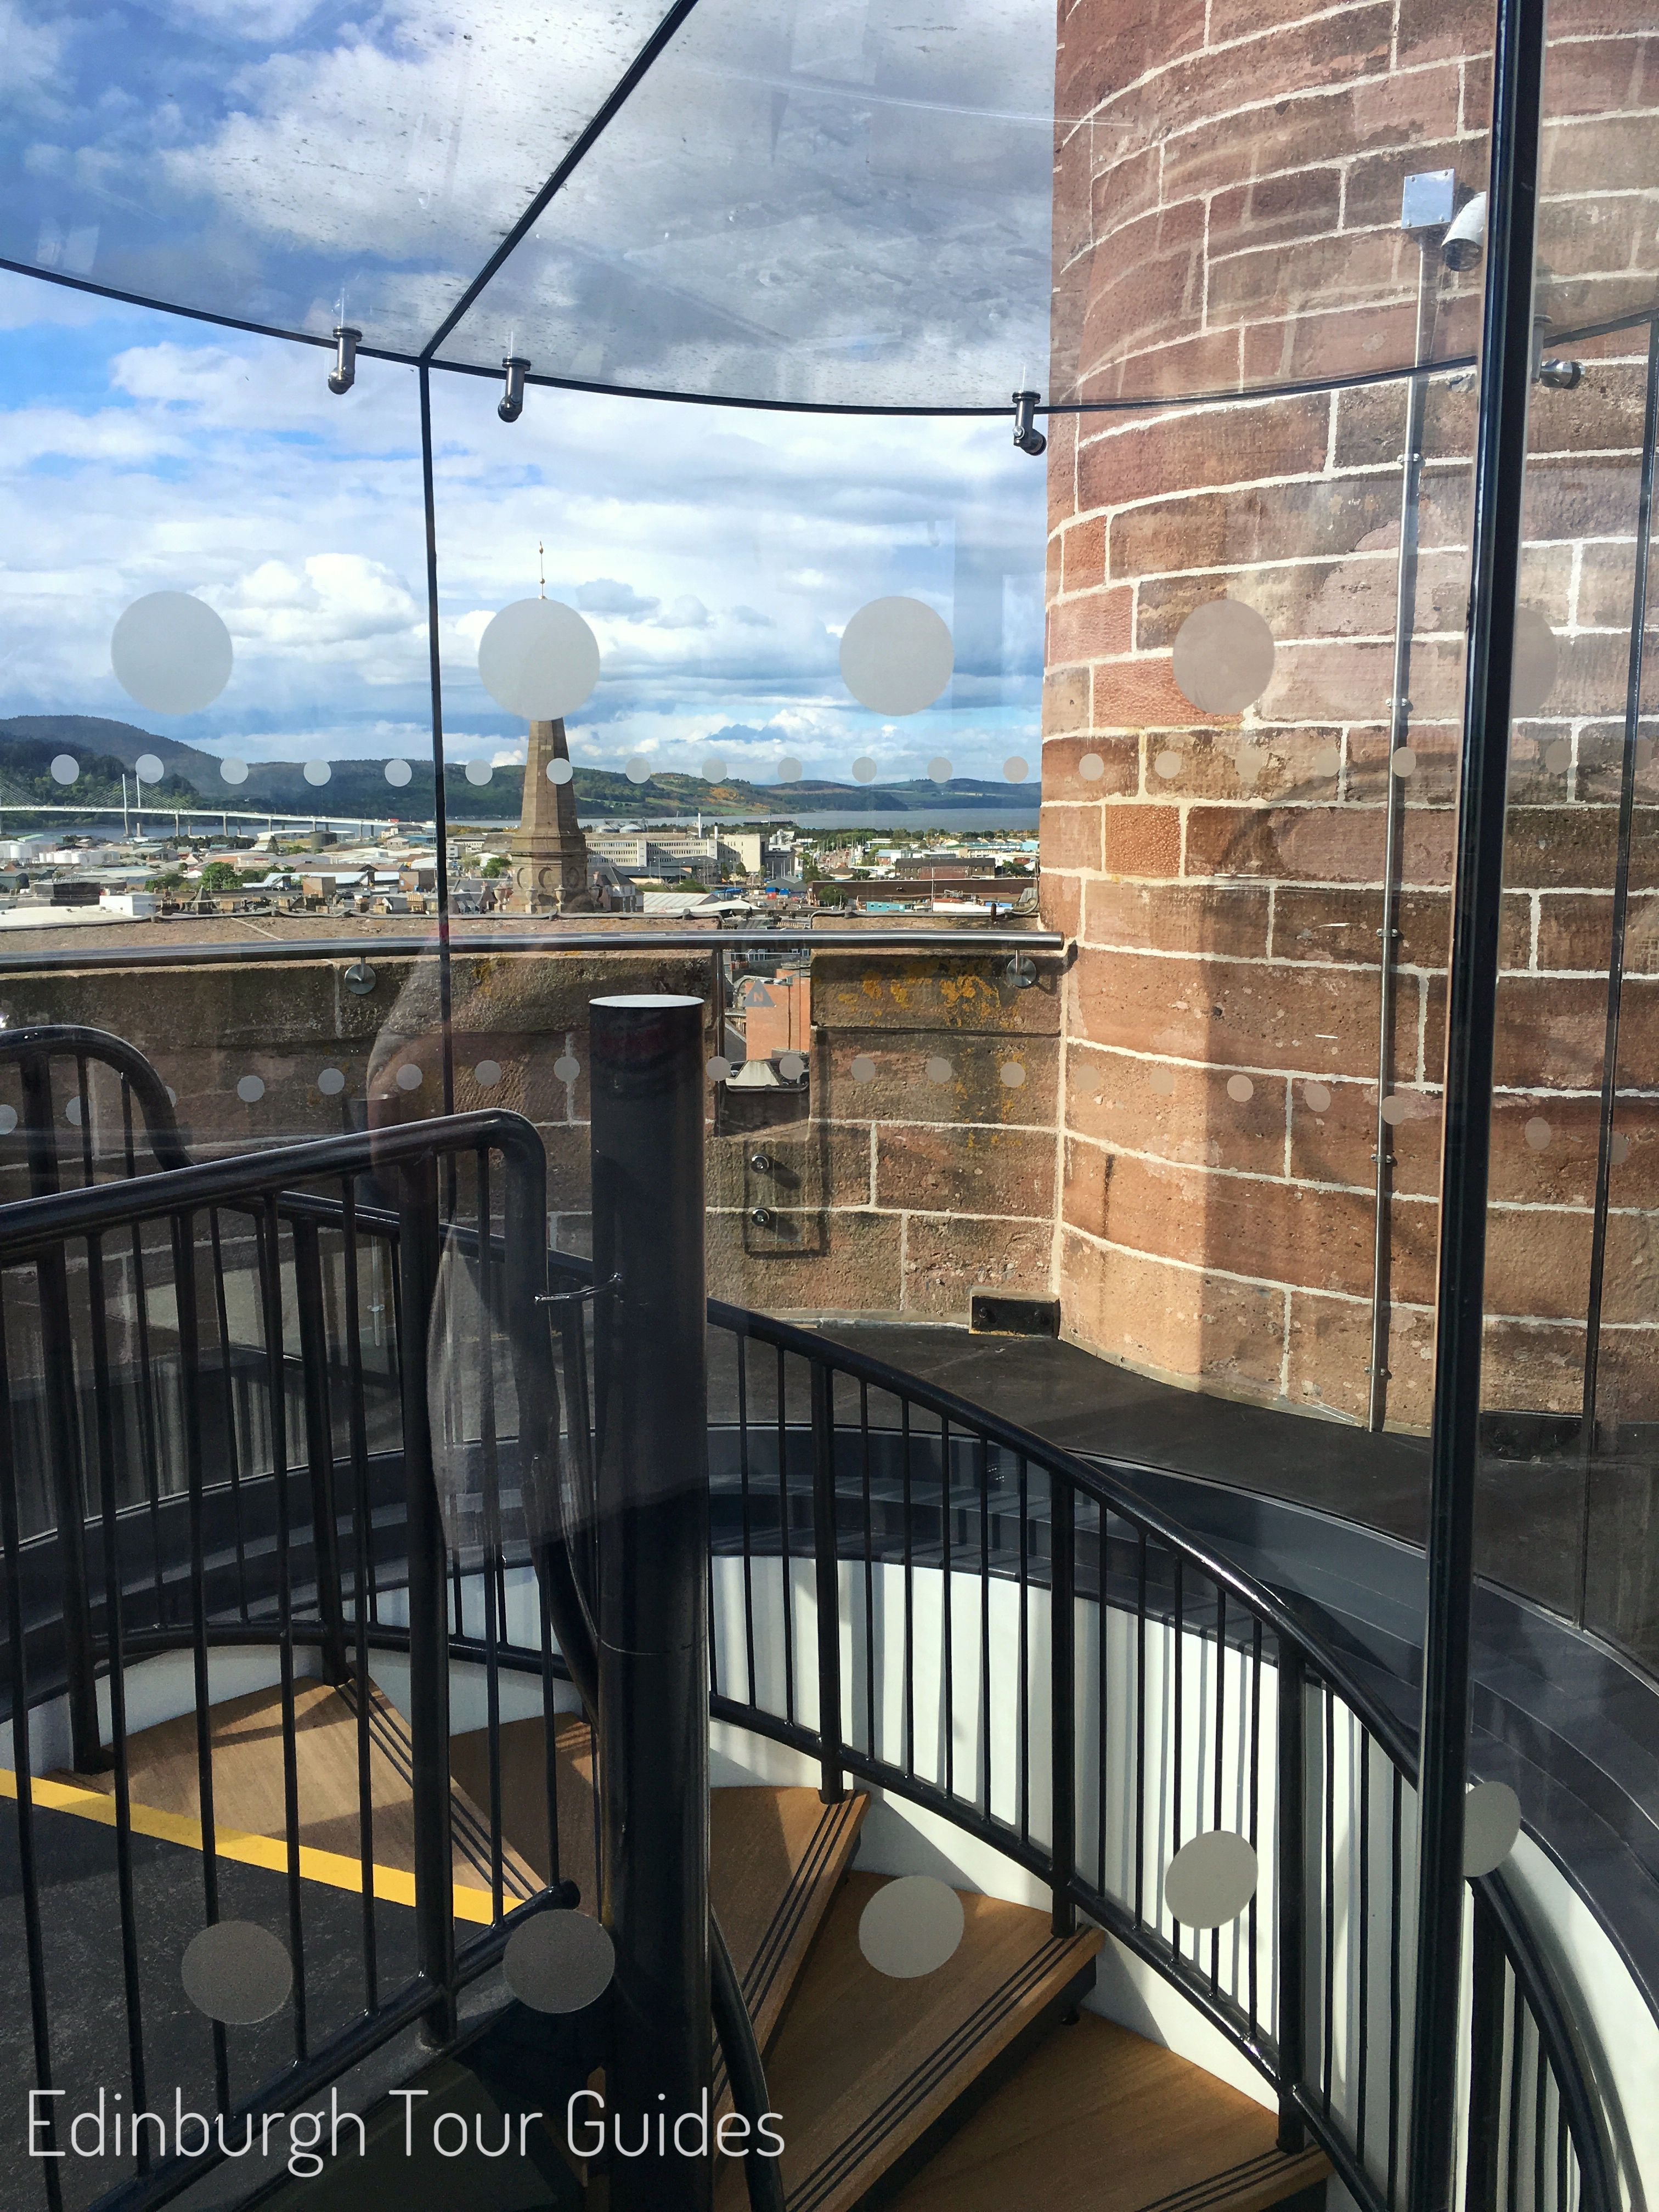 Top Of The Spiral Staircase Inverness Castle Viewpoint Edinburgh Tours Local Tour Inverness Castle